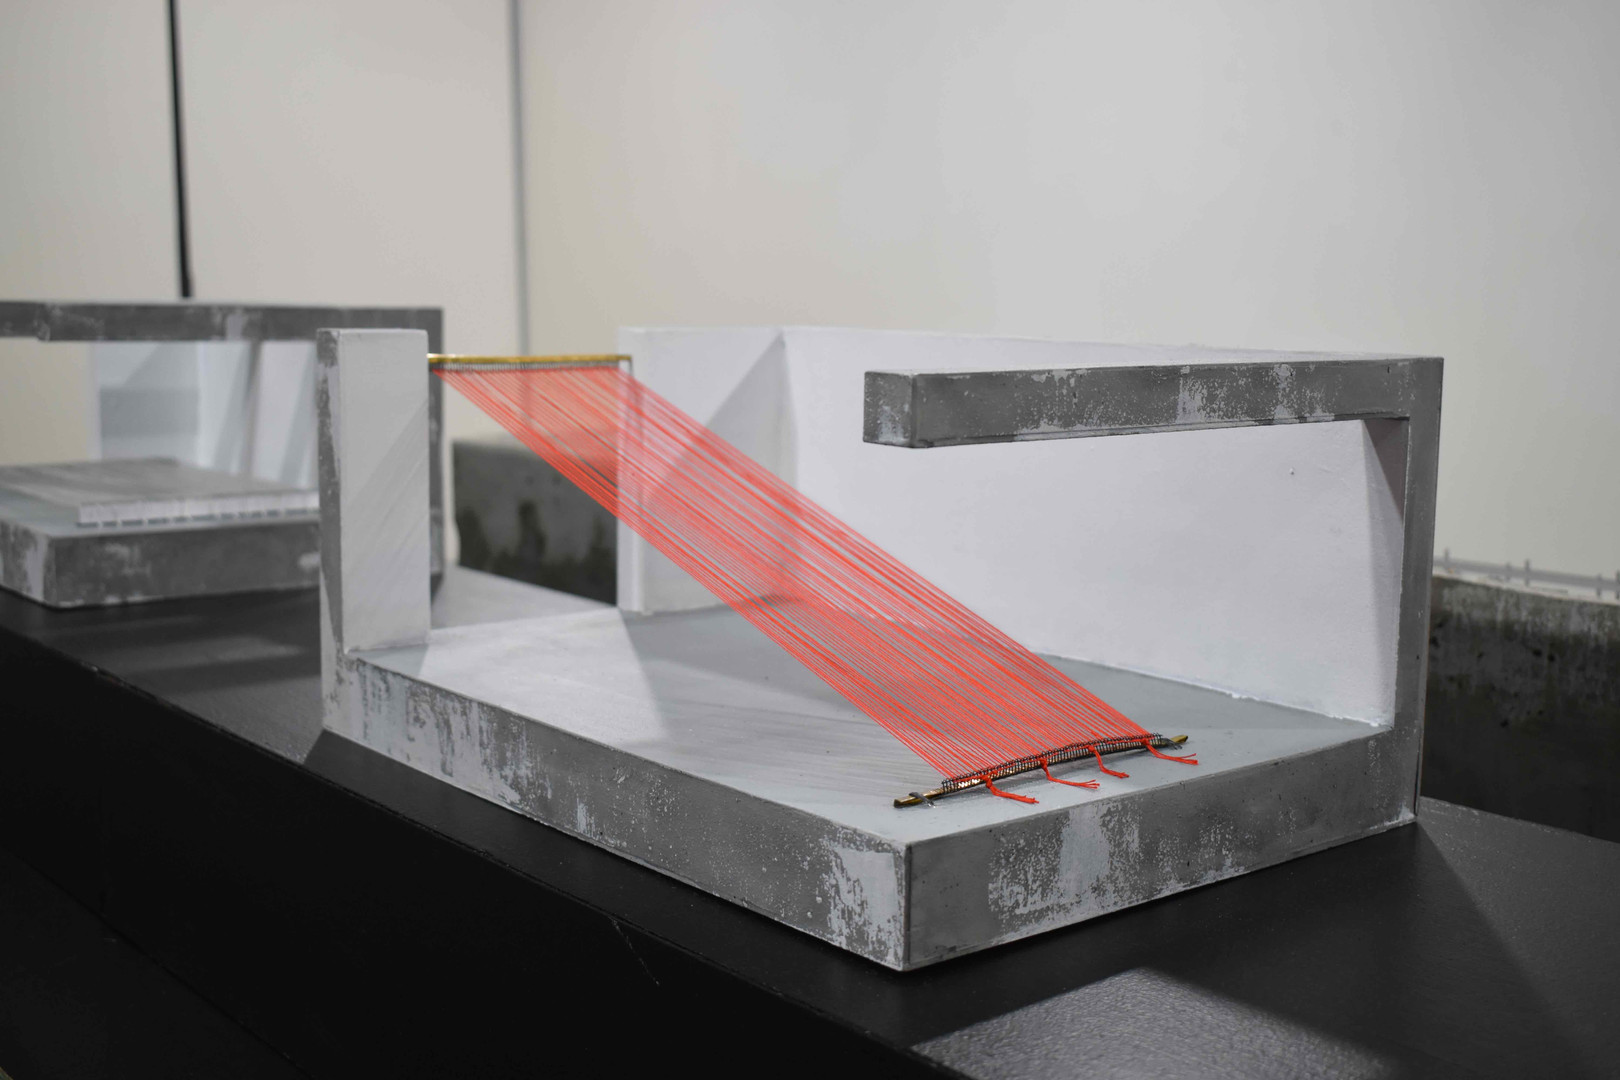 Spatial Aphorisms in Scale Models (2019) Elia Bosshard